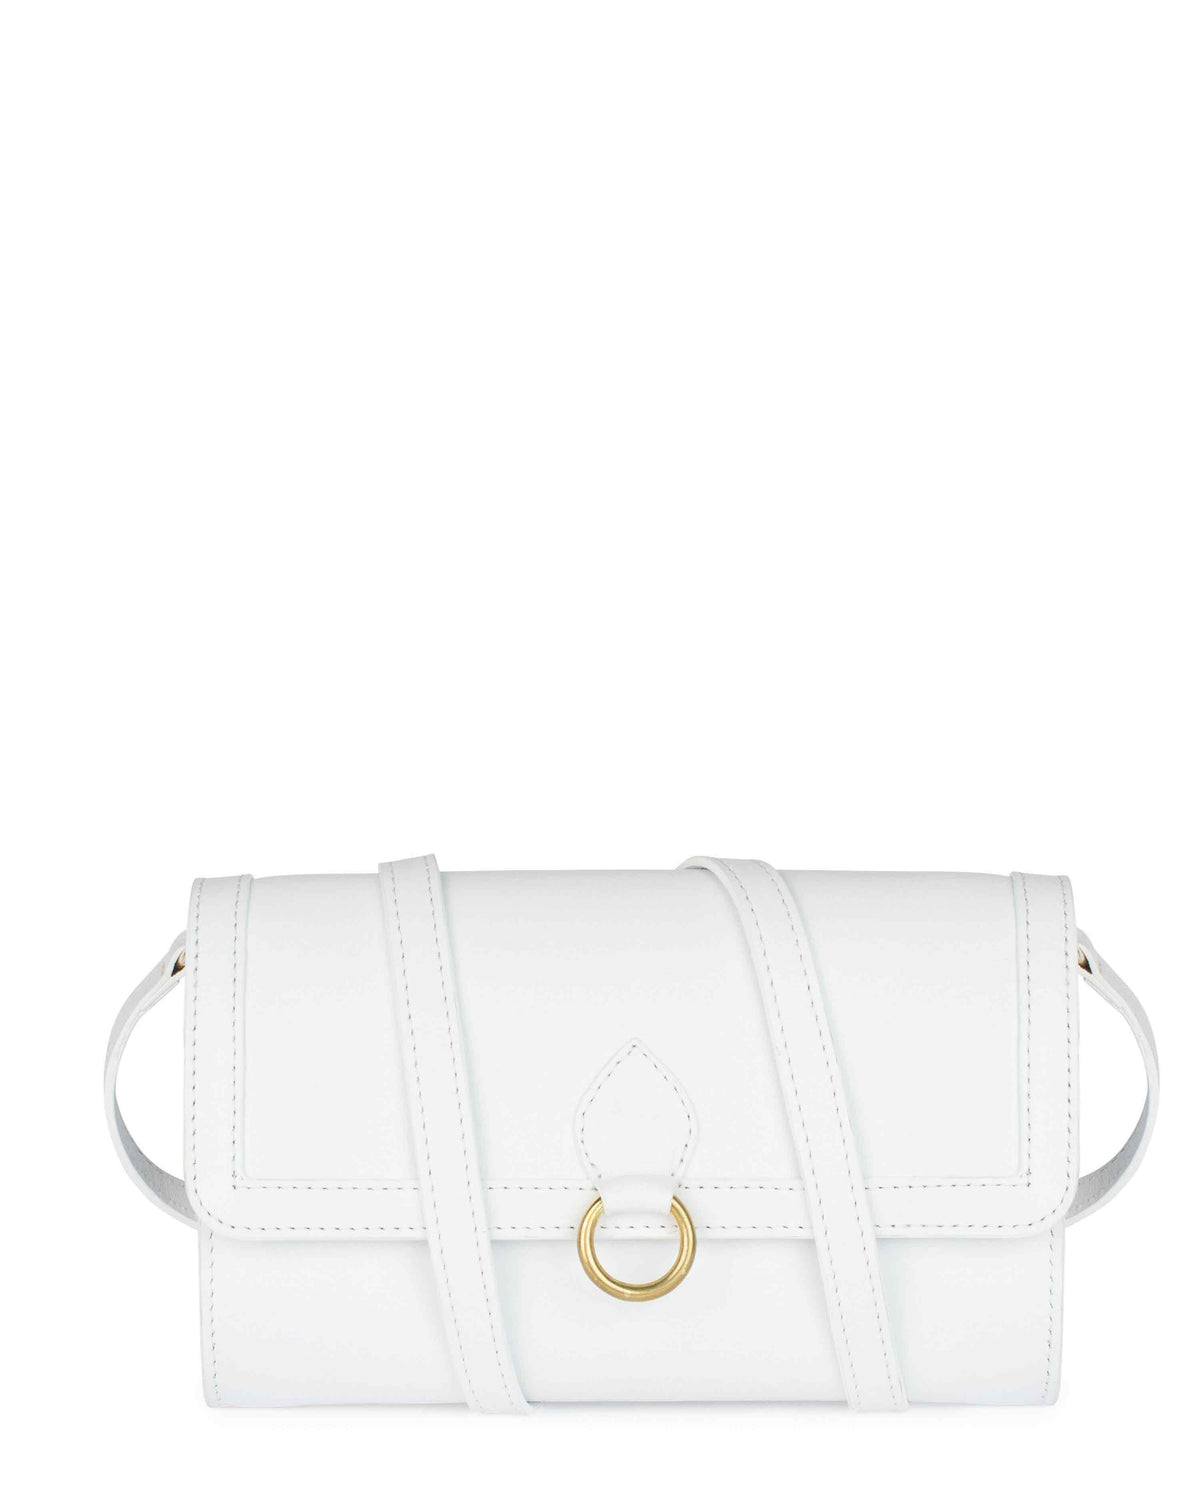 GITANA WALLET in White Napa